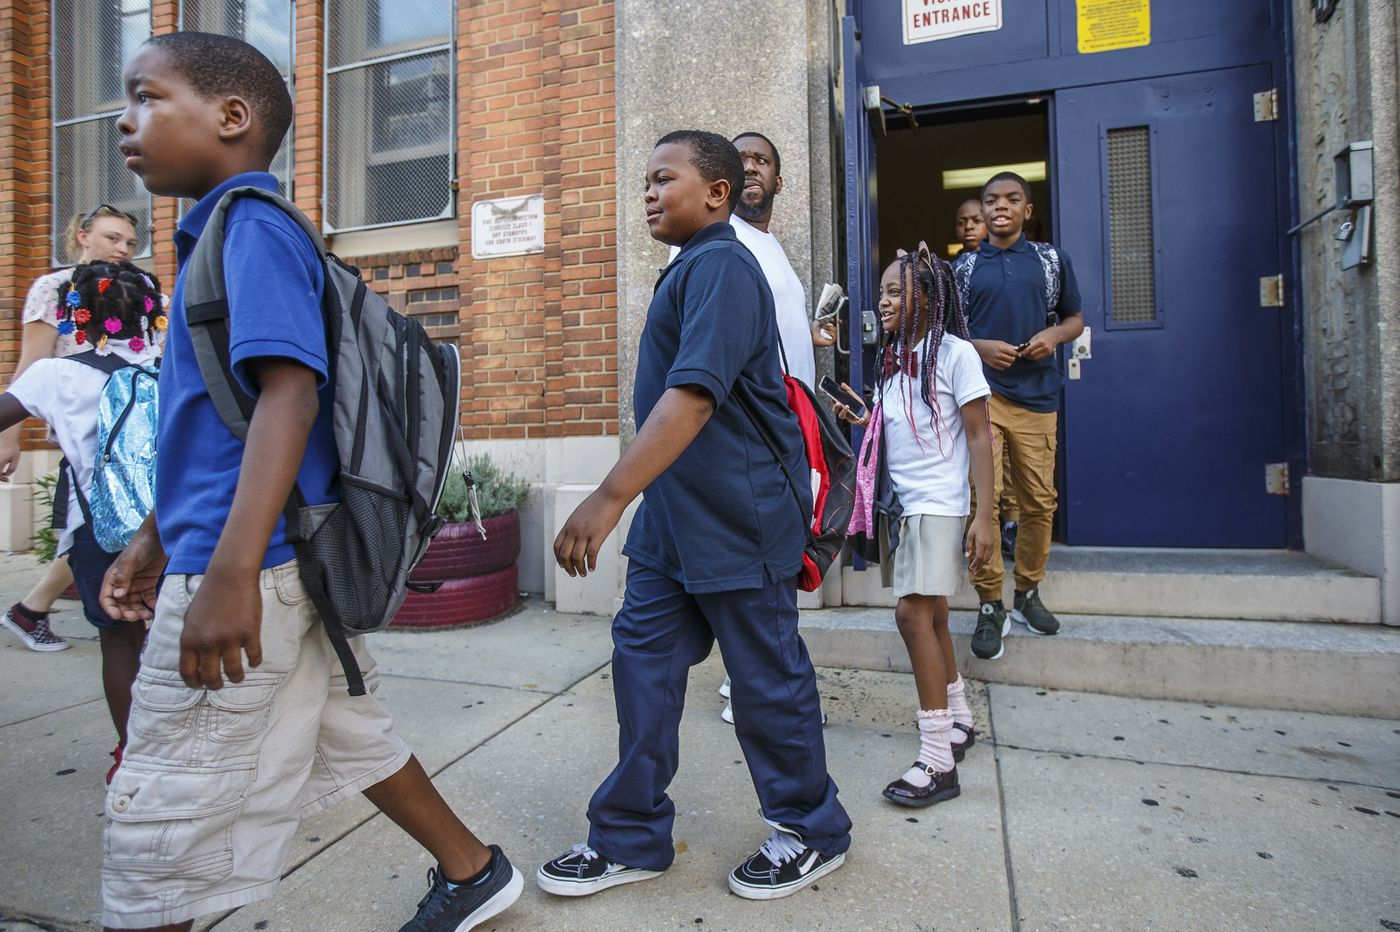 School could start later next year in Philly, after Labor Day